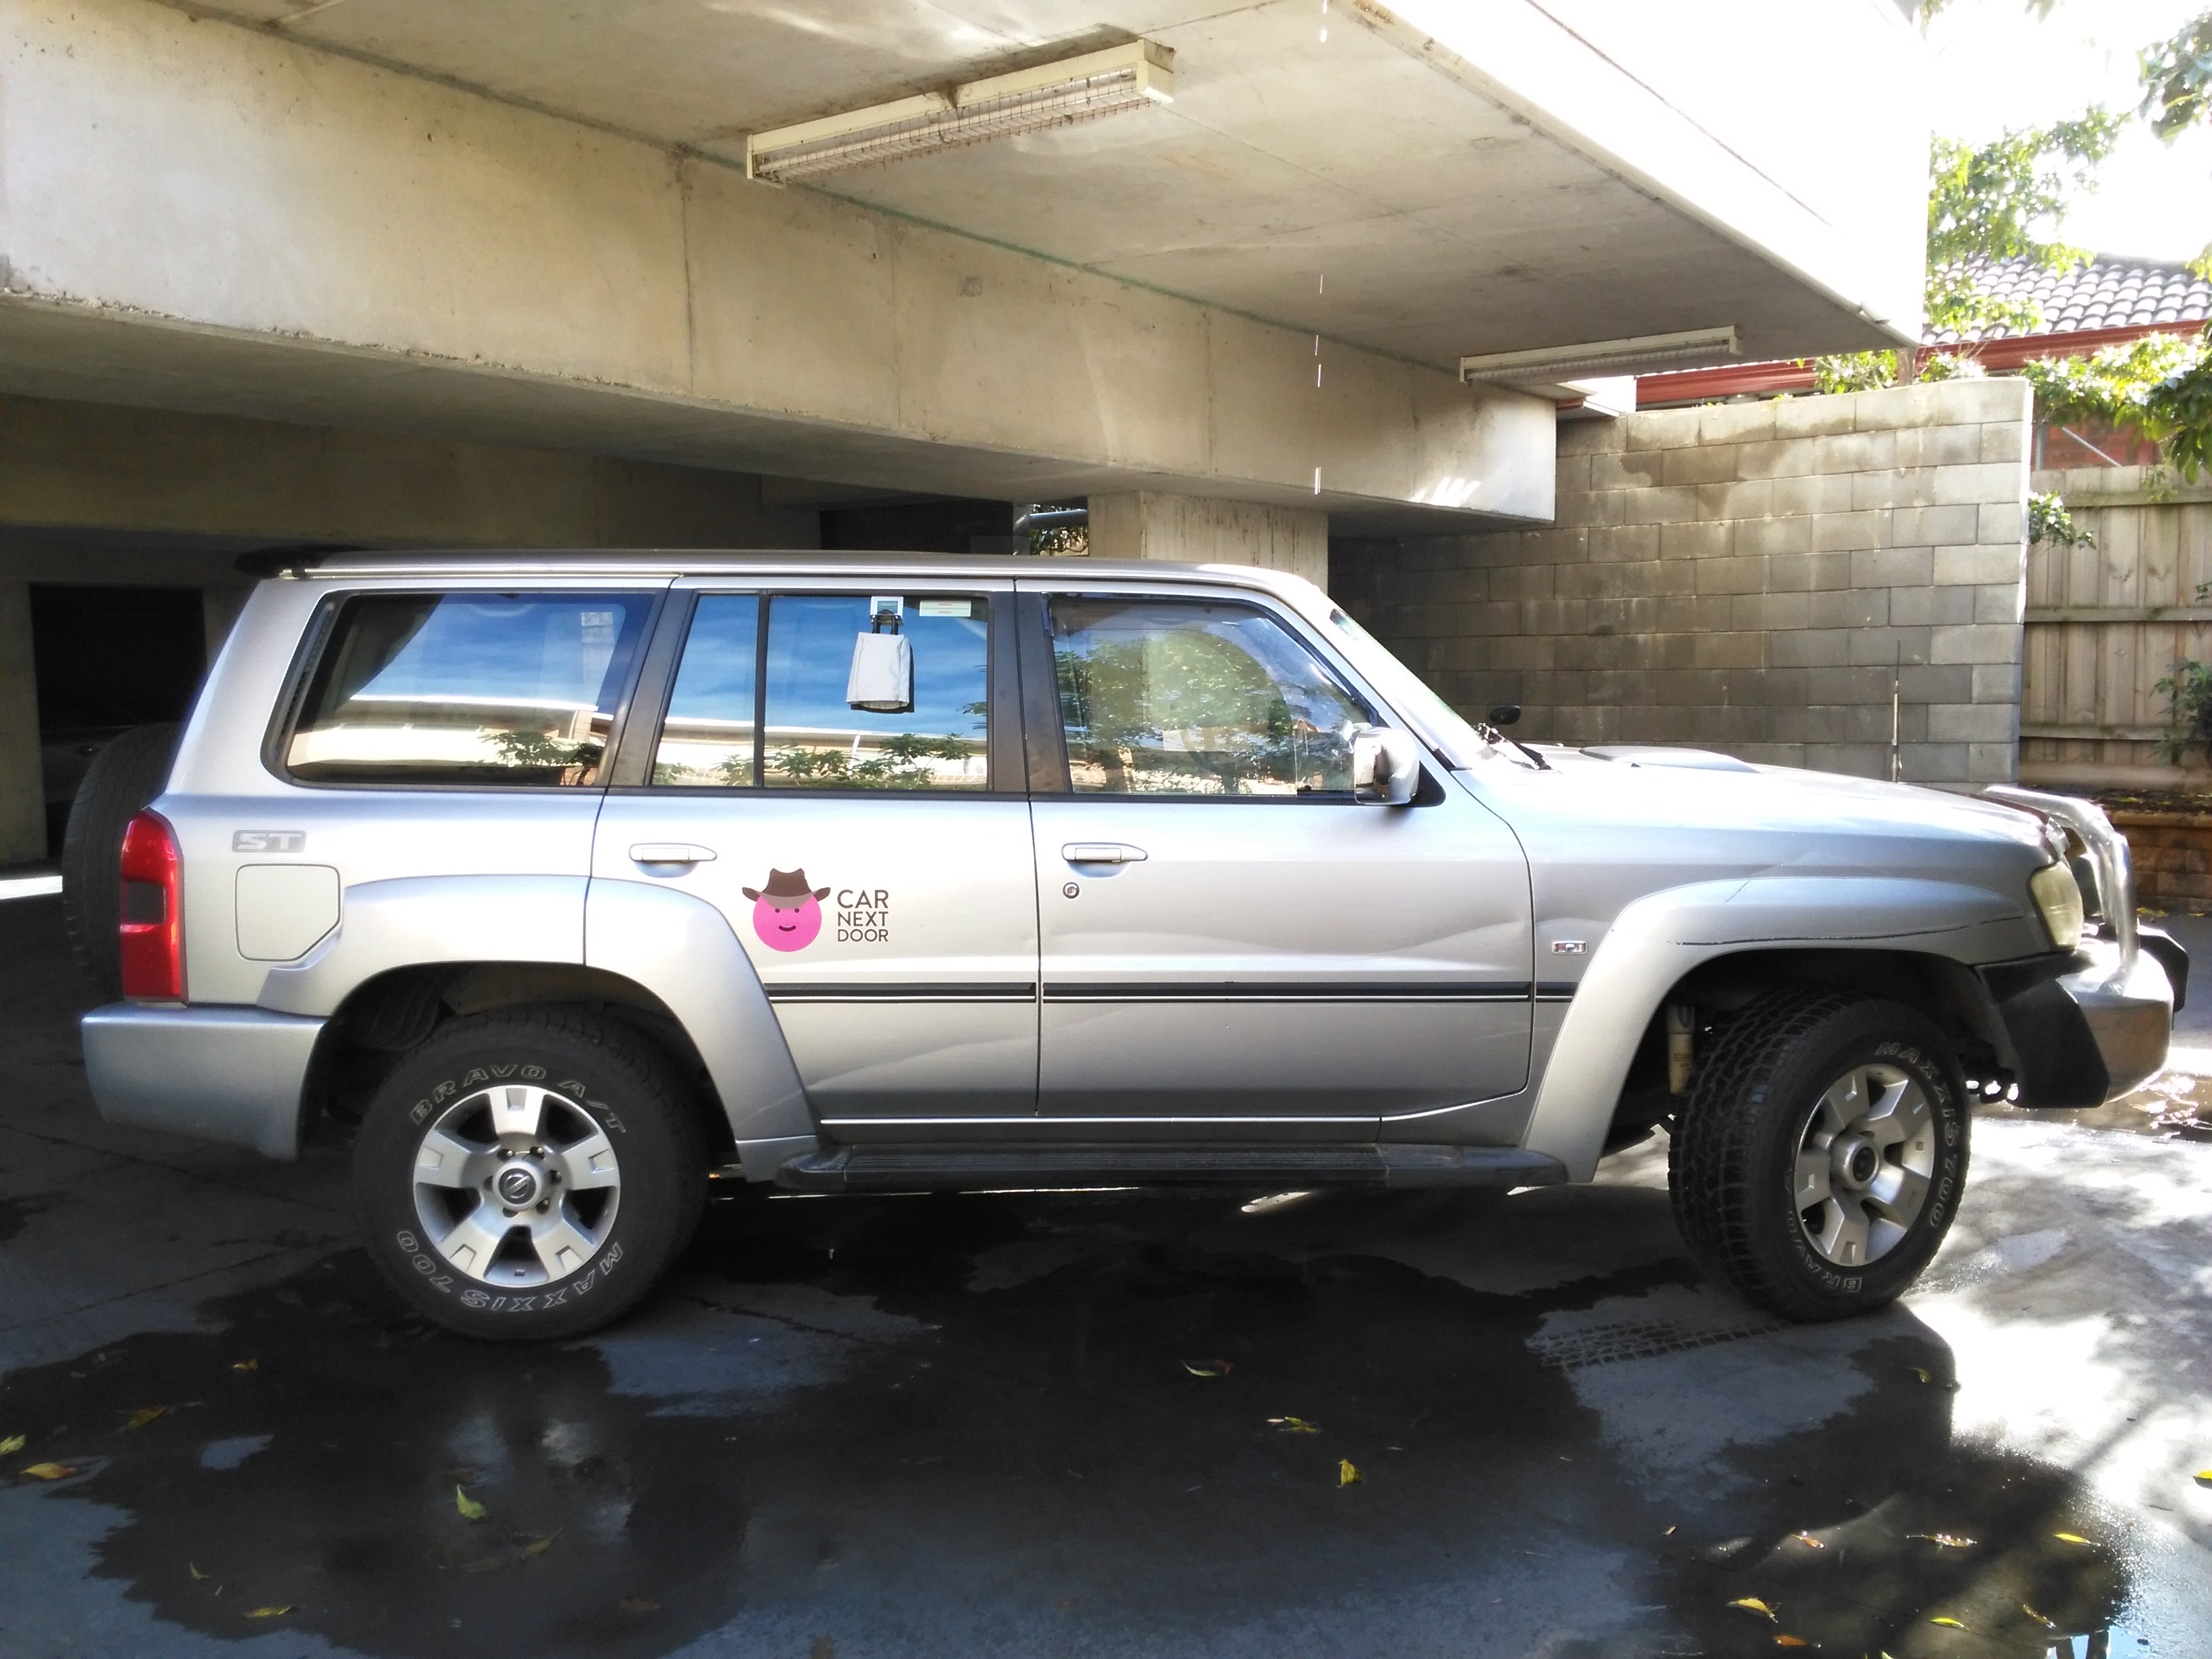 Picture of Cameron's 2005 Nissan Patrol